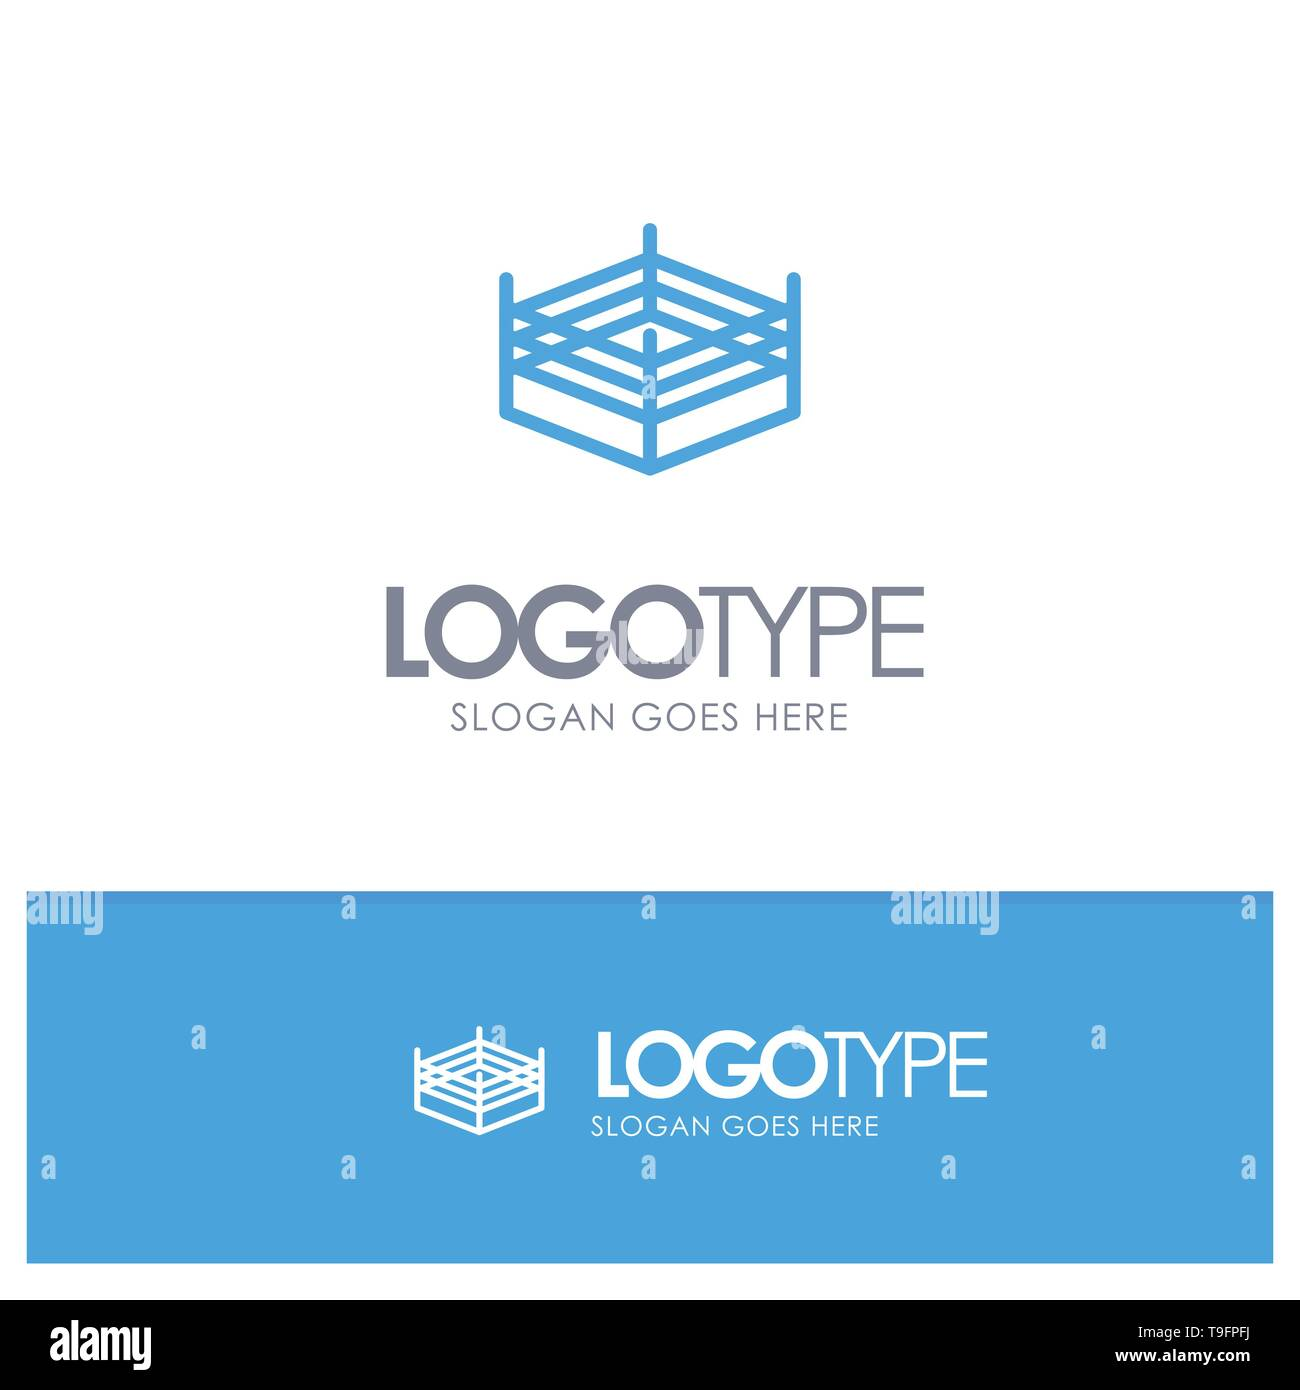 Boxing, Ring, Wrestling Blue outLine Logo with place for tagline - Stock Image